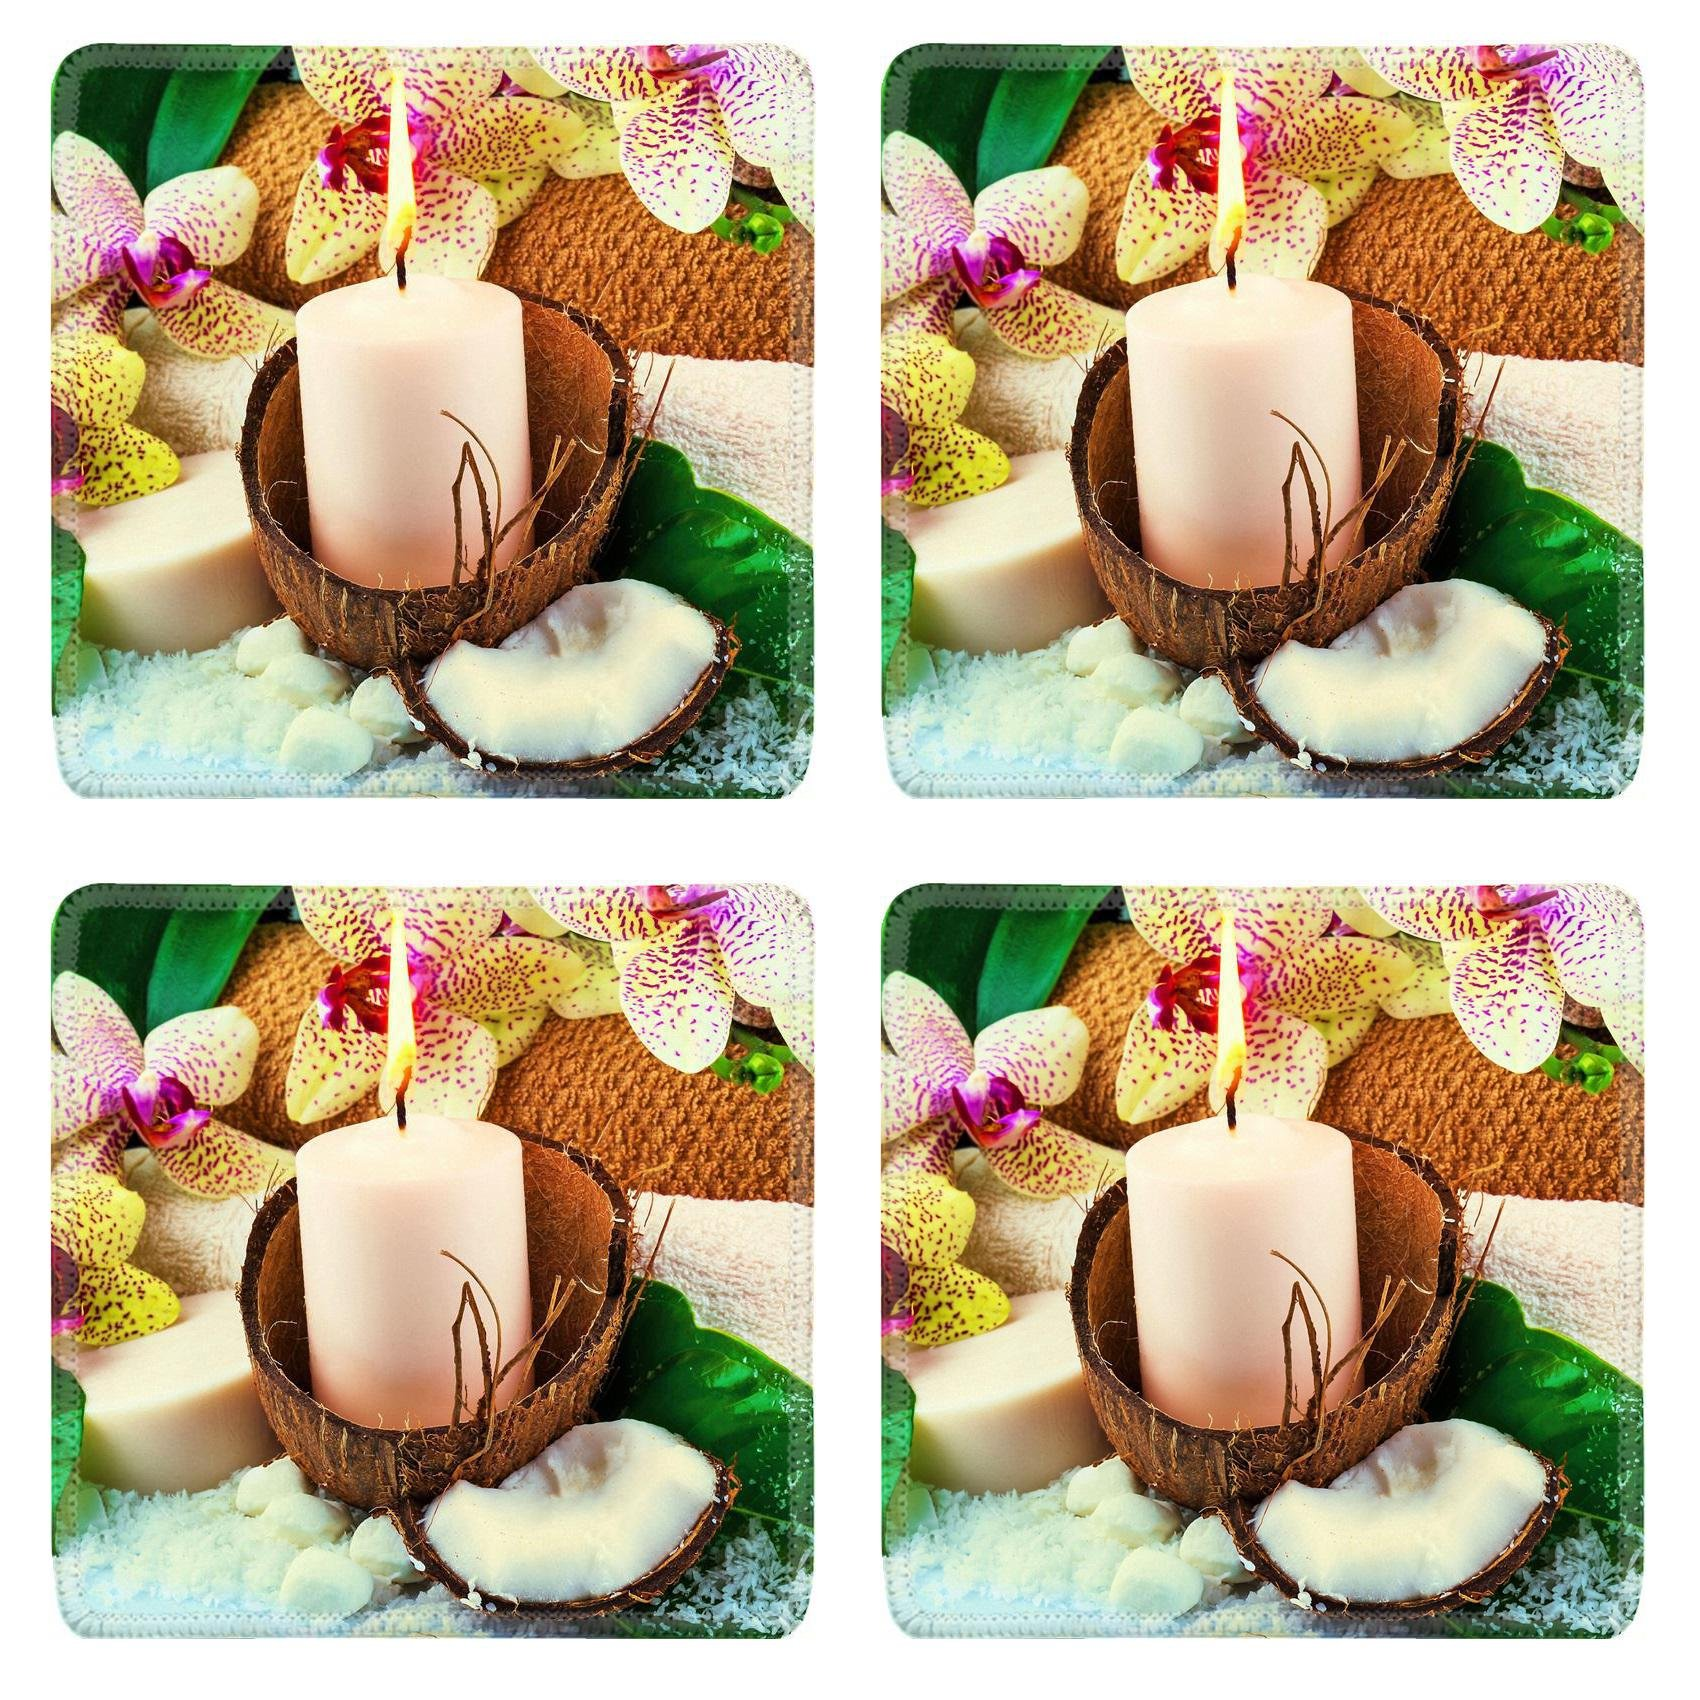 MSD Square Coasters Non-Slip Natural Rubber Desk Coasters design 25238941 Spa concept with candle coconut orchid towels soap green leaves